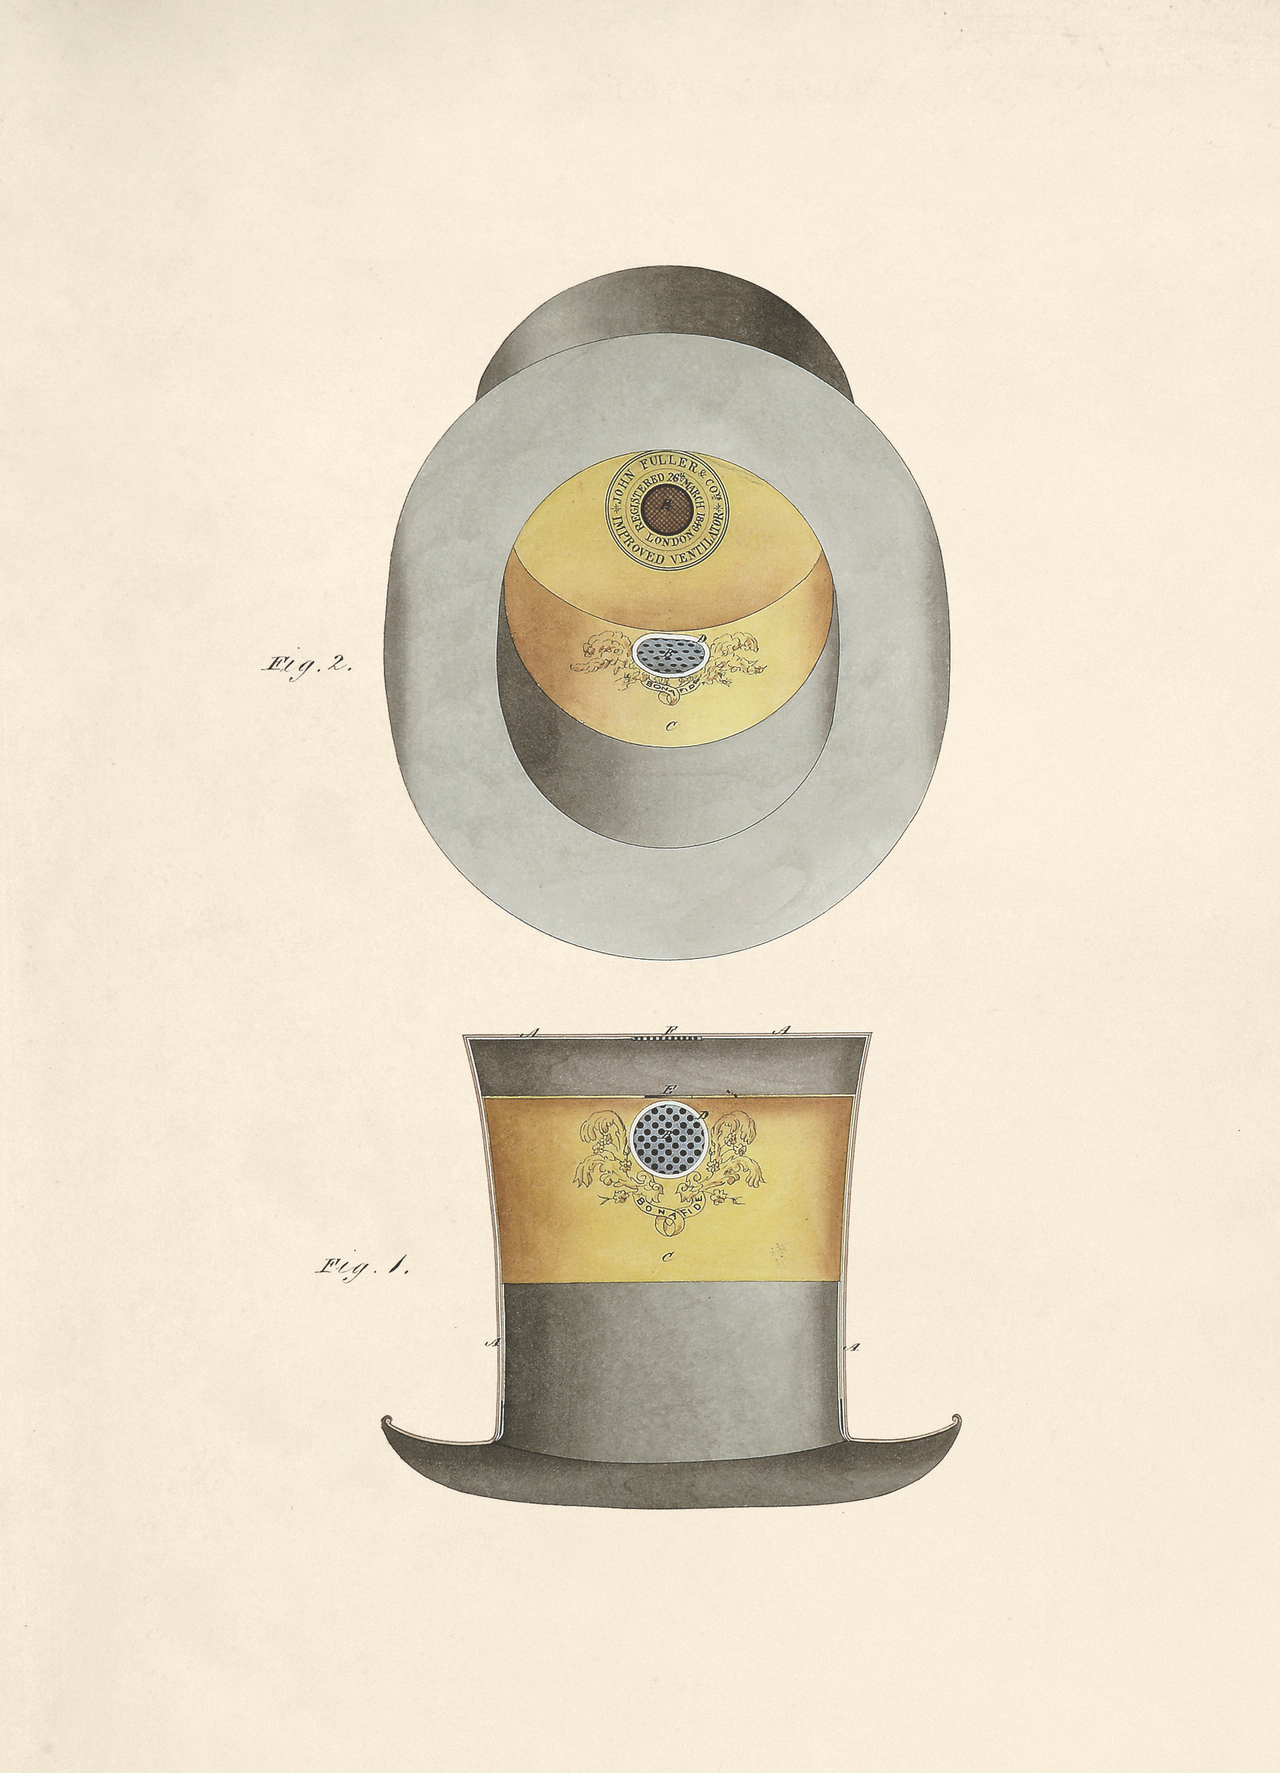 The Bonafide Ventilating Hat by John Fuller & Co, 1849 (BT 45/10) (The National Archives, London, England 2014. © 2014 Crown Copyright)